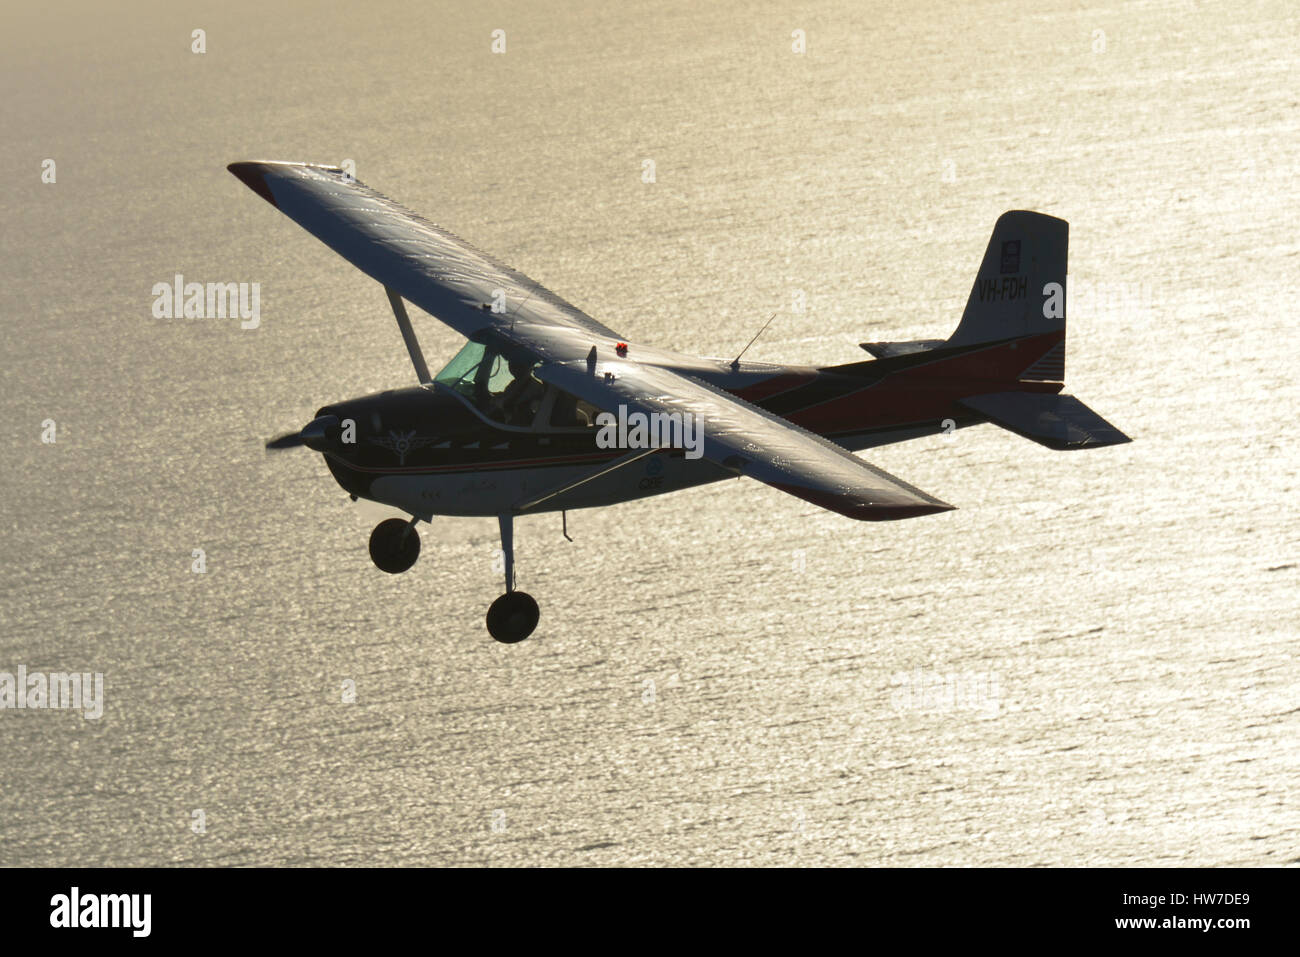 Cessna 180 Skywagon aircraft aircraft in silhouette, backlit by sun reflecting off the ocean. - Stock Image